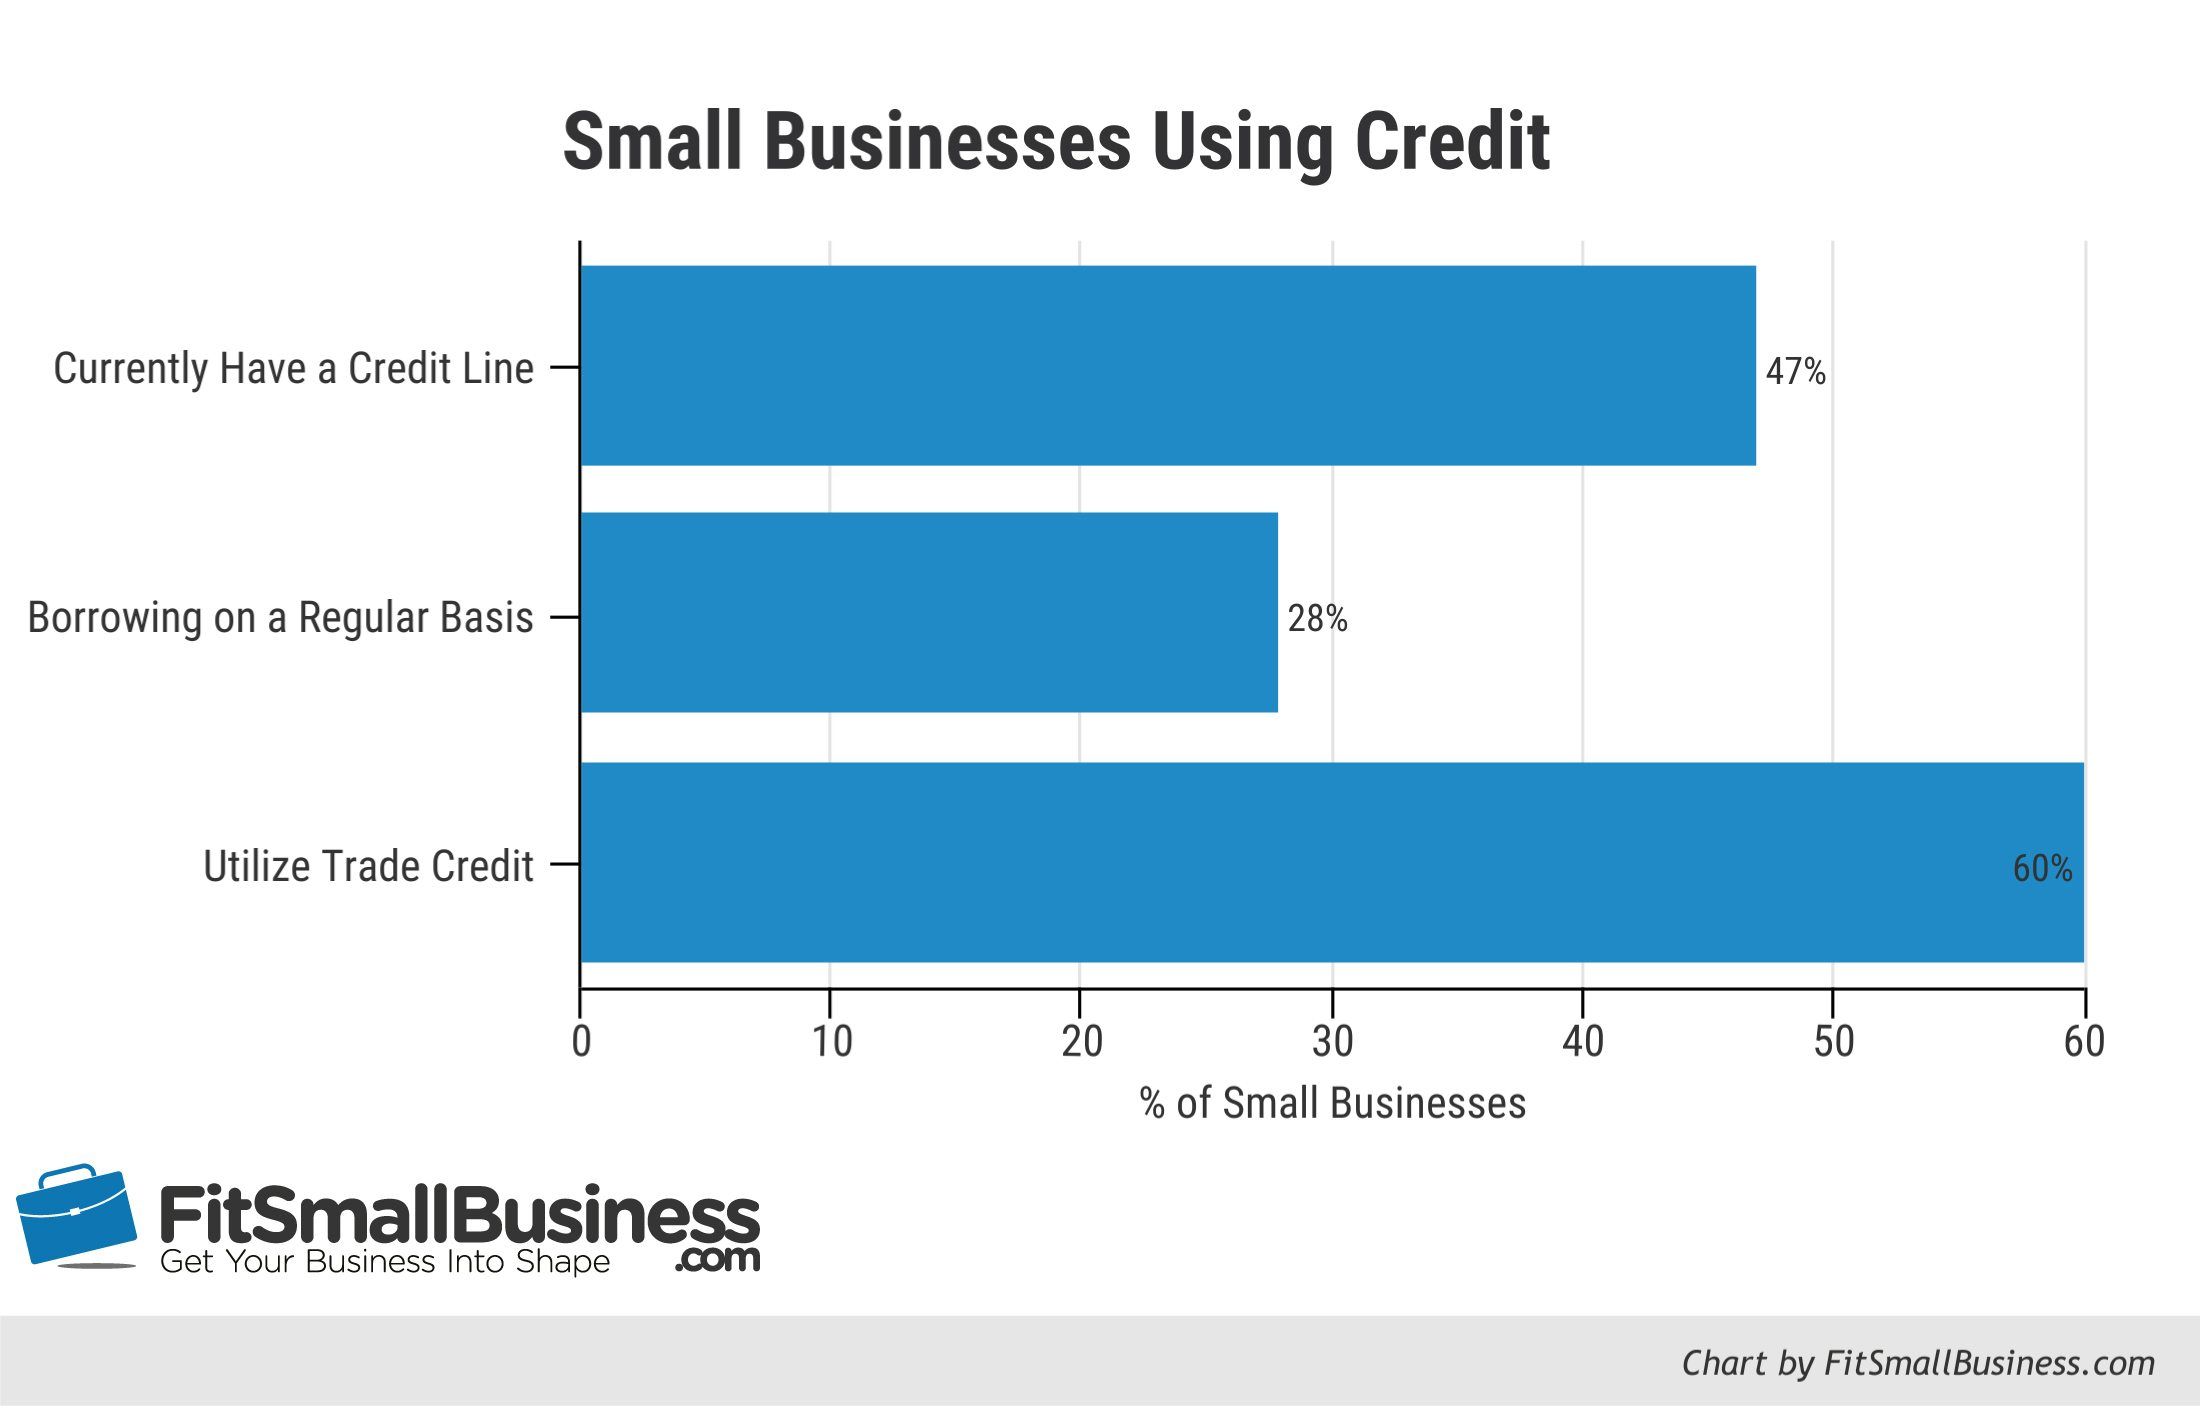 Not Only Do 47% Of Small Businesses Have A Line Of Credit, But 28% Of Small  Businesses Are Relying On Borrowed Funds On A Regular Basis